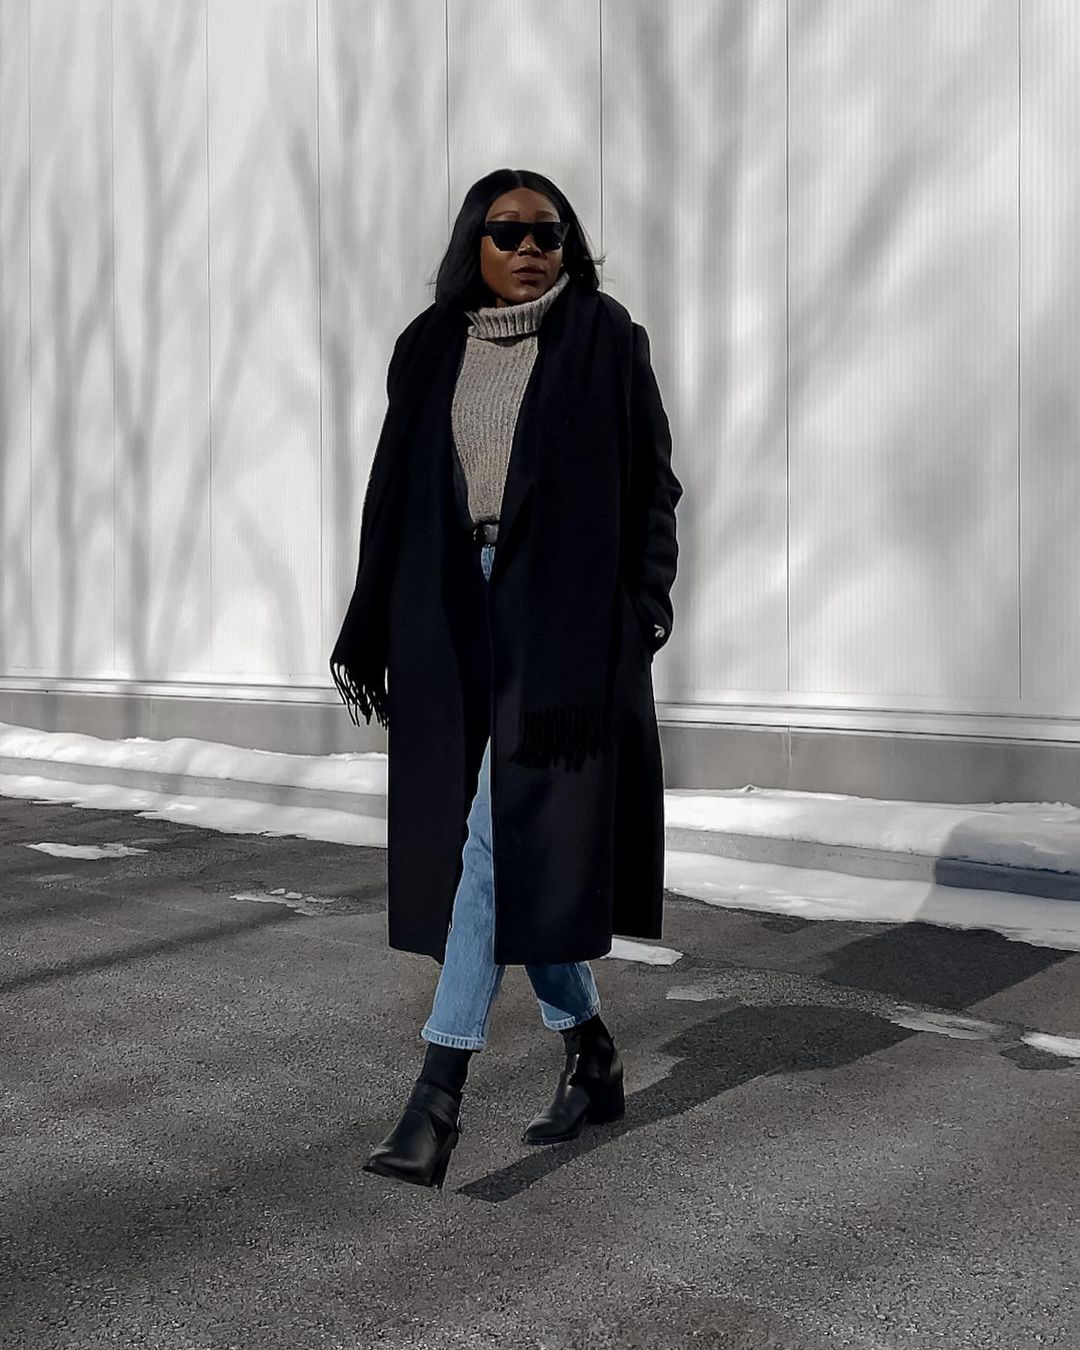 Stylish Winter Outfit Idea From Instagram — Sabrinah Edouard in a black coat, gray turtleneck sweater, jeans, and black boots